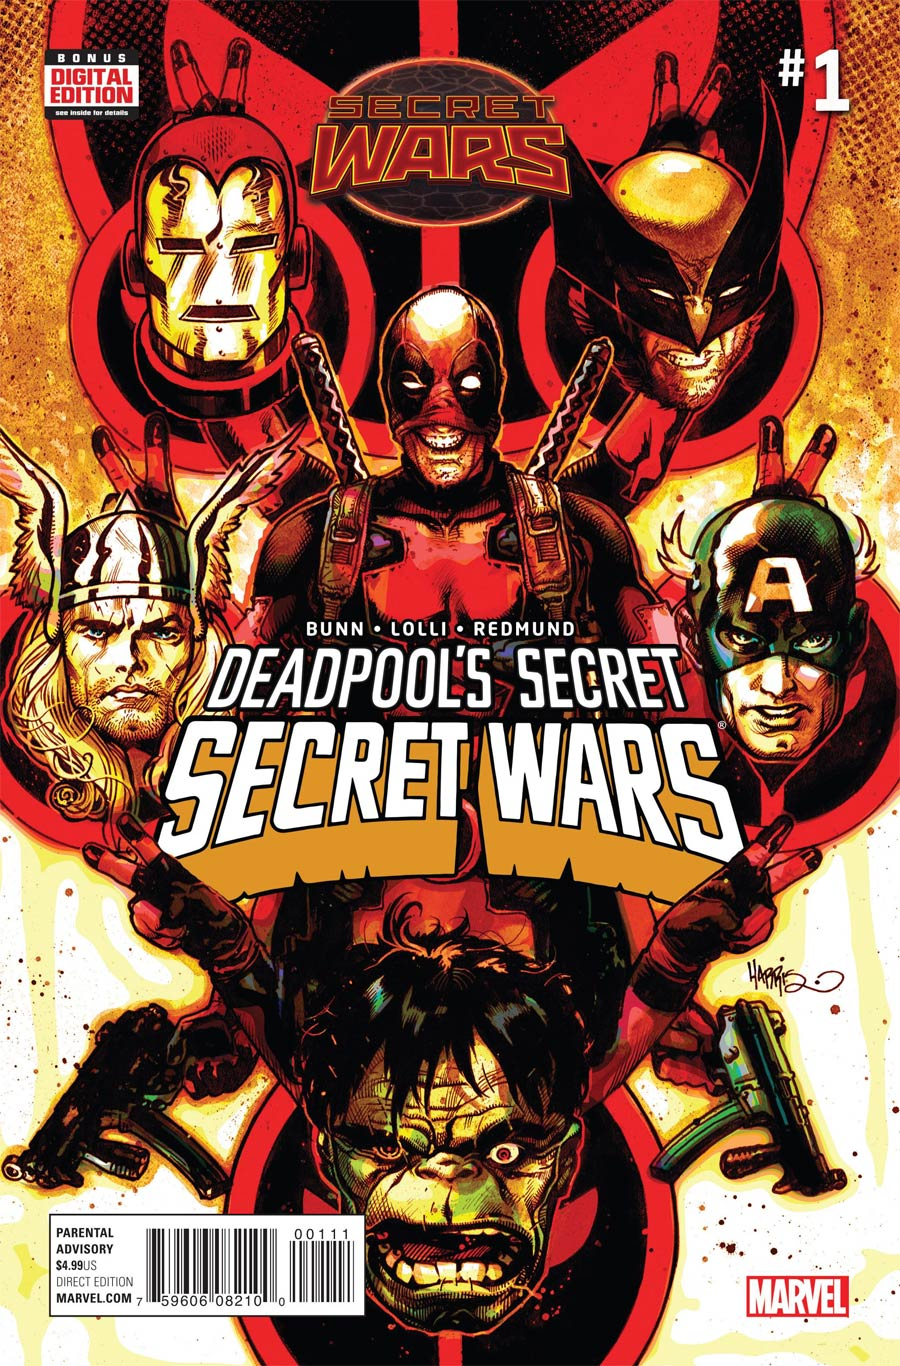 Deadpools Secret Secret Wars #1 Cover A Regular Tony Harris Cover (Secret Wars Warzones Tie-In)